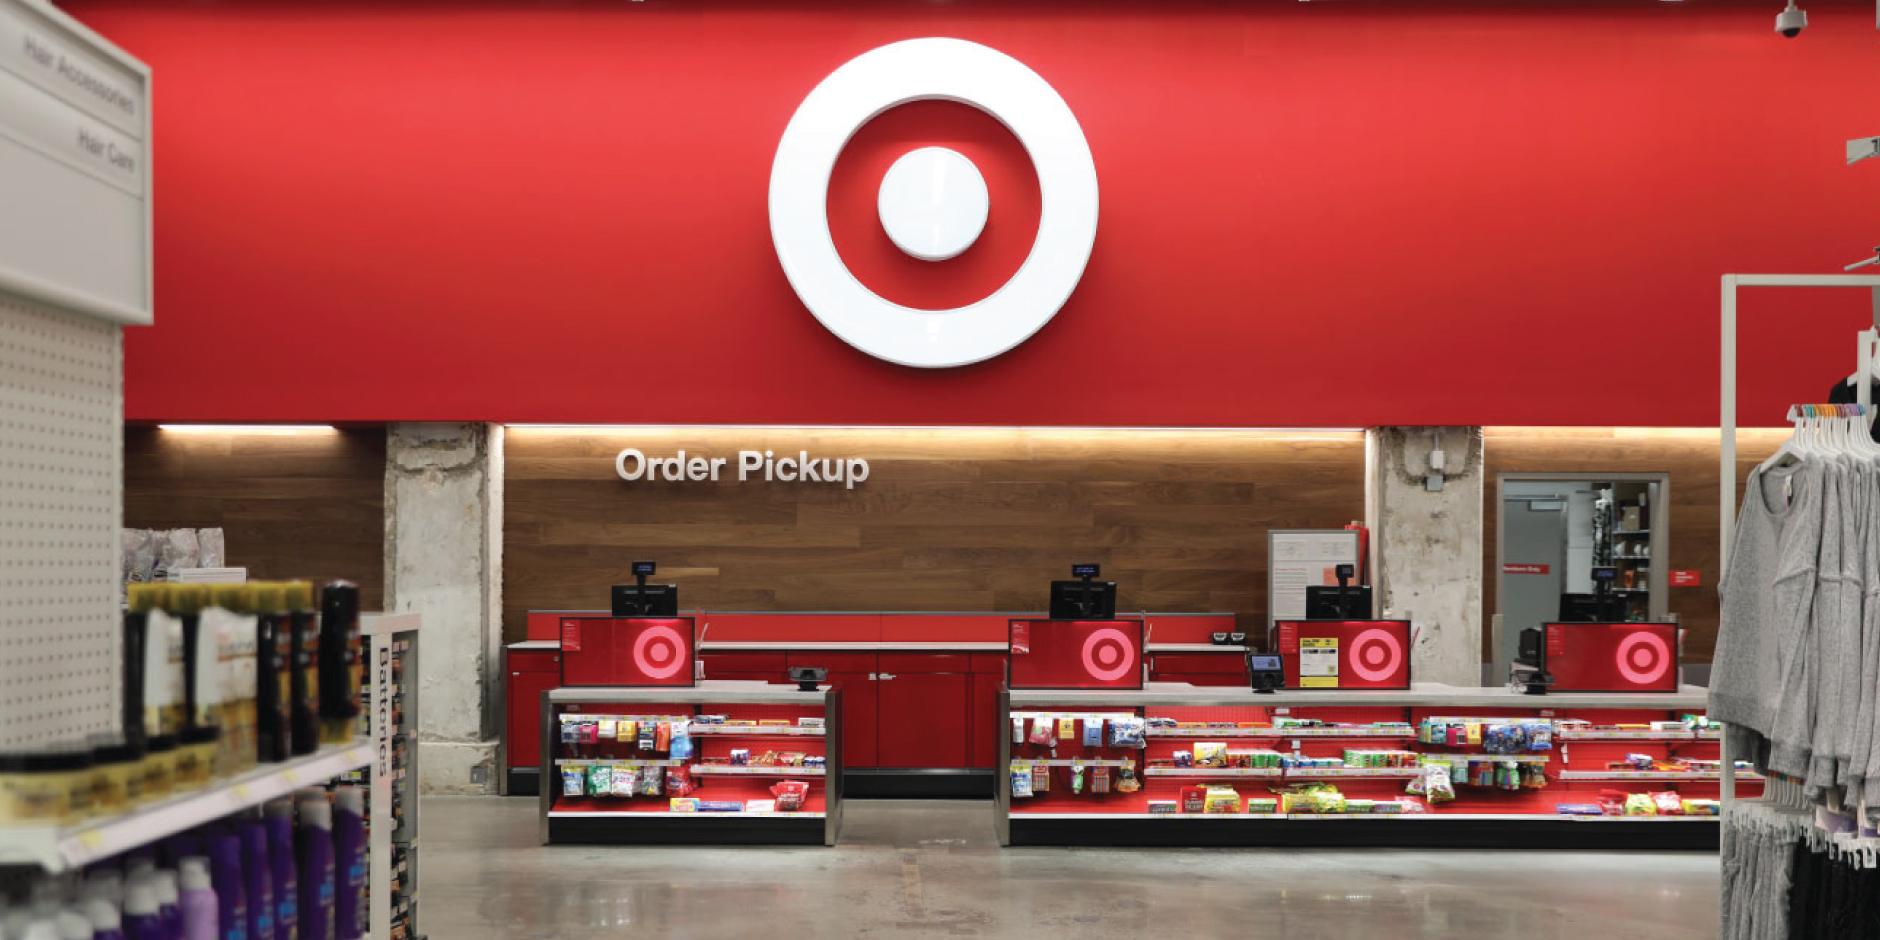 Interior of a Target store with Order Pickup sign and product displays